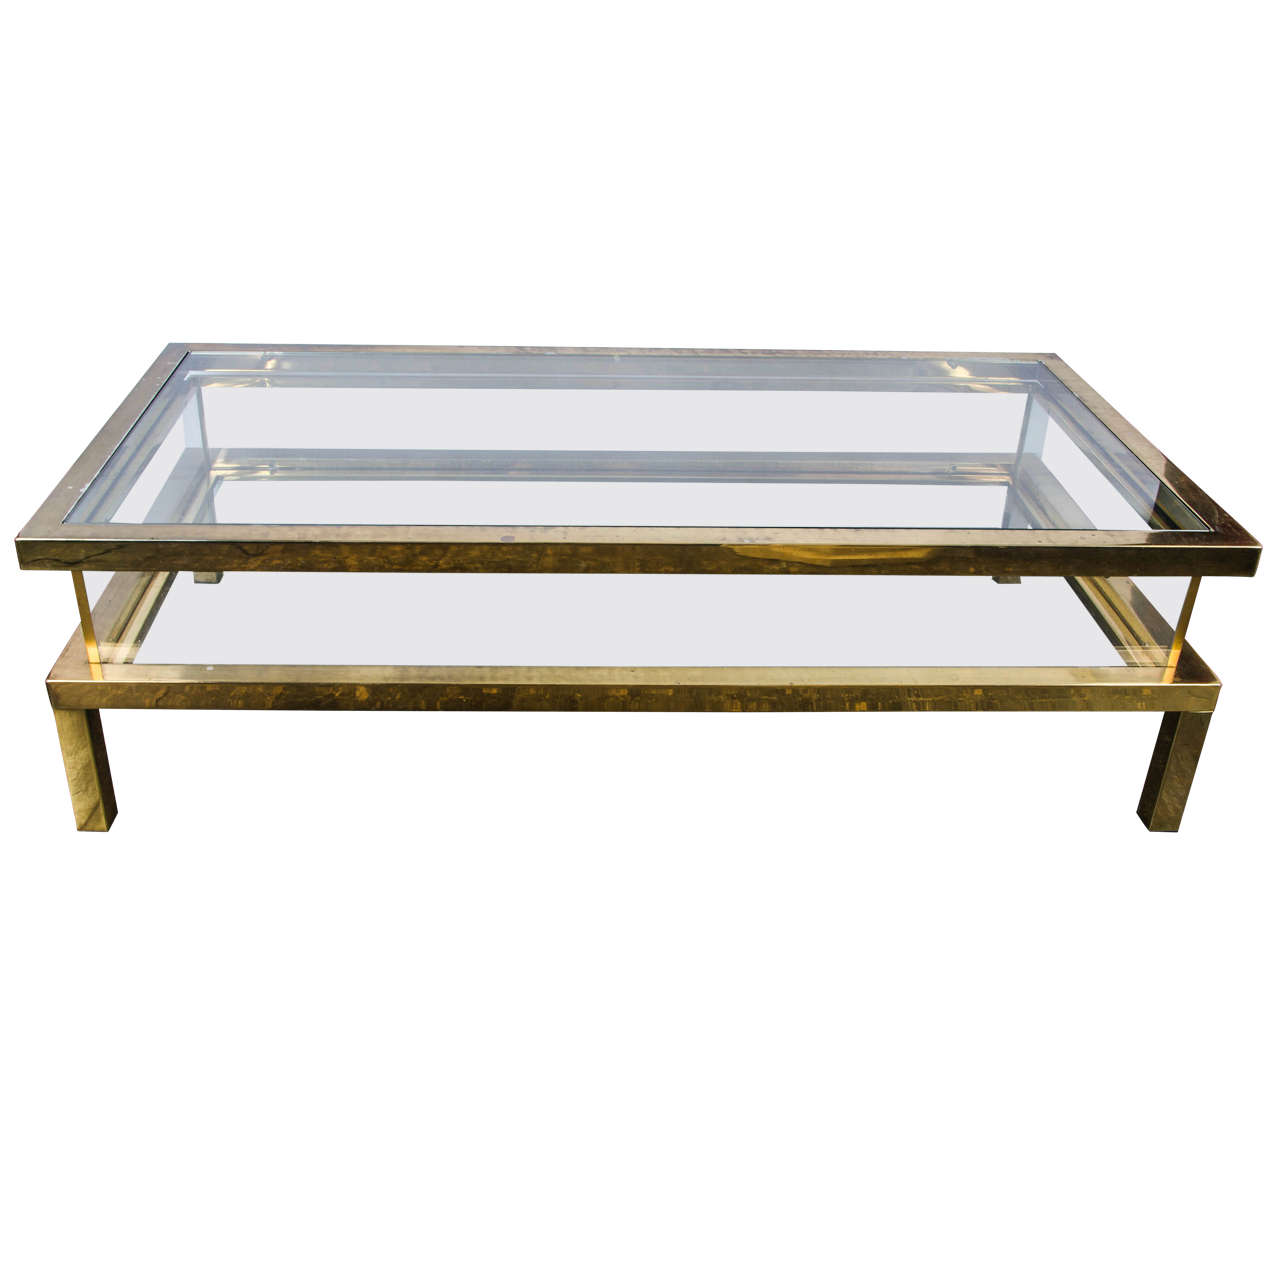 1960s french coffee table with a sliding glass top at 1stdibs for French glass coffee table